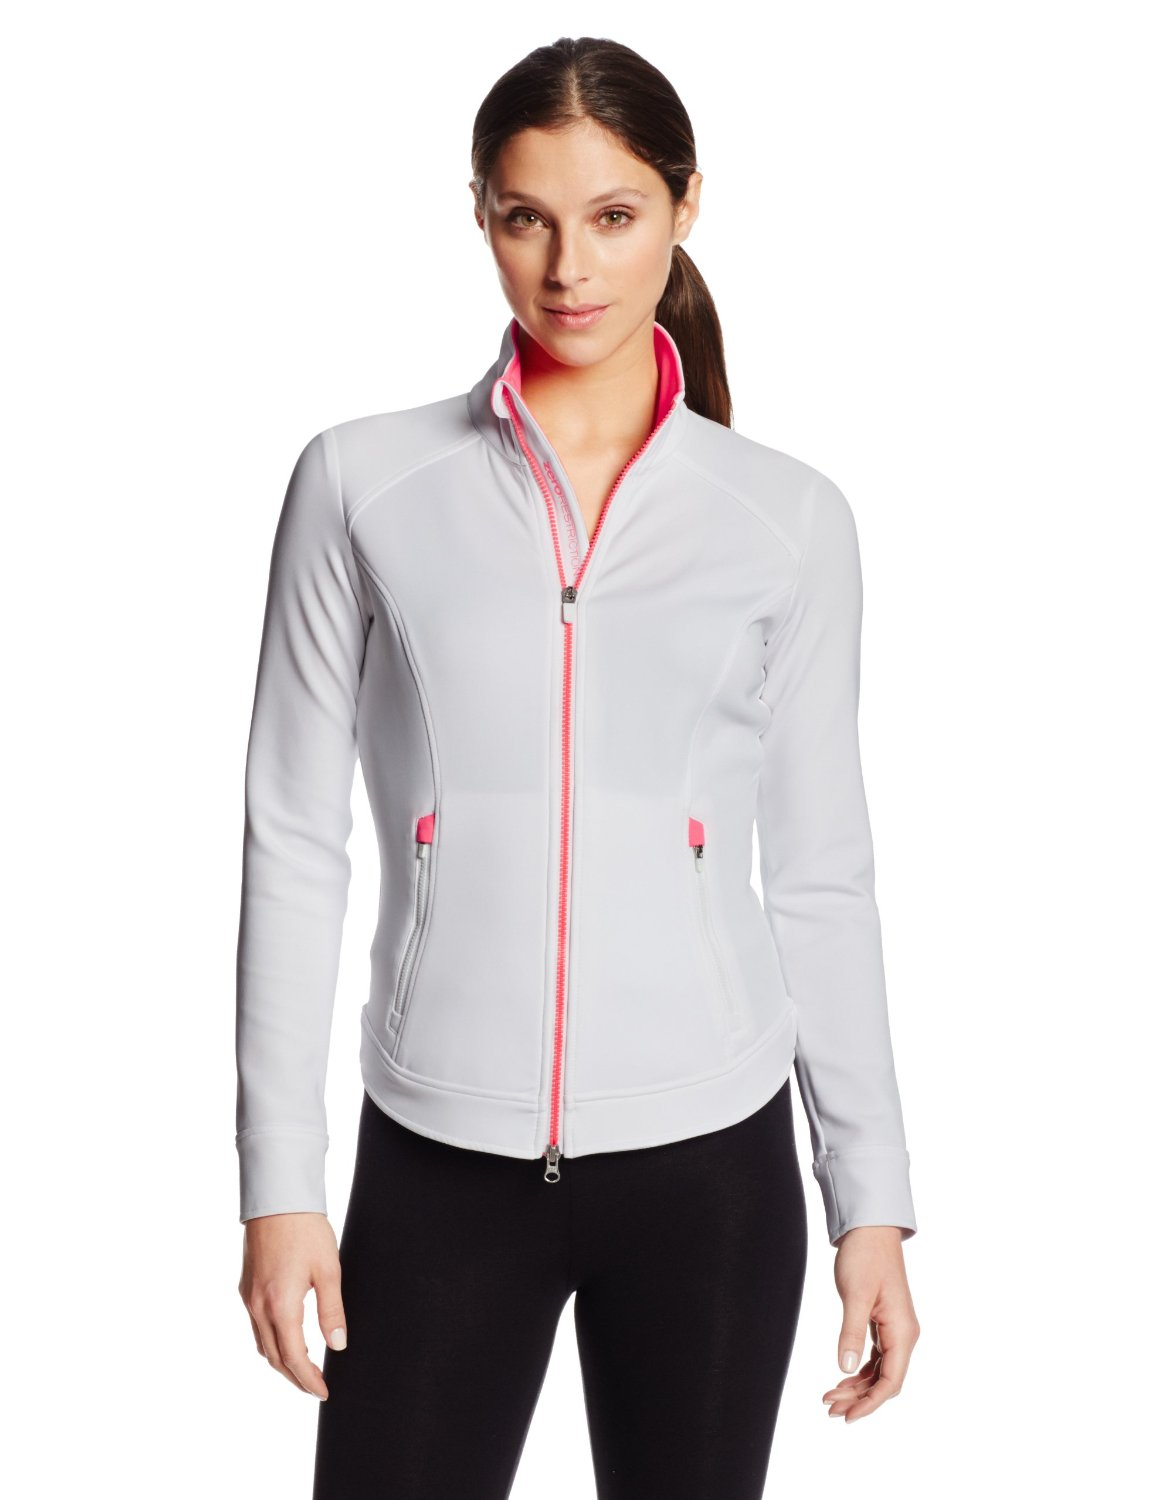 Zero Restriction Womens Golf Pullovers